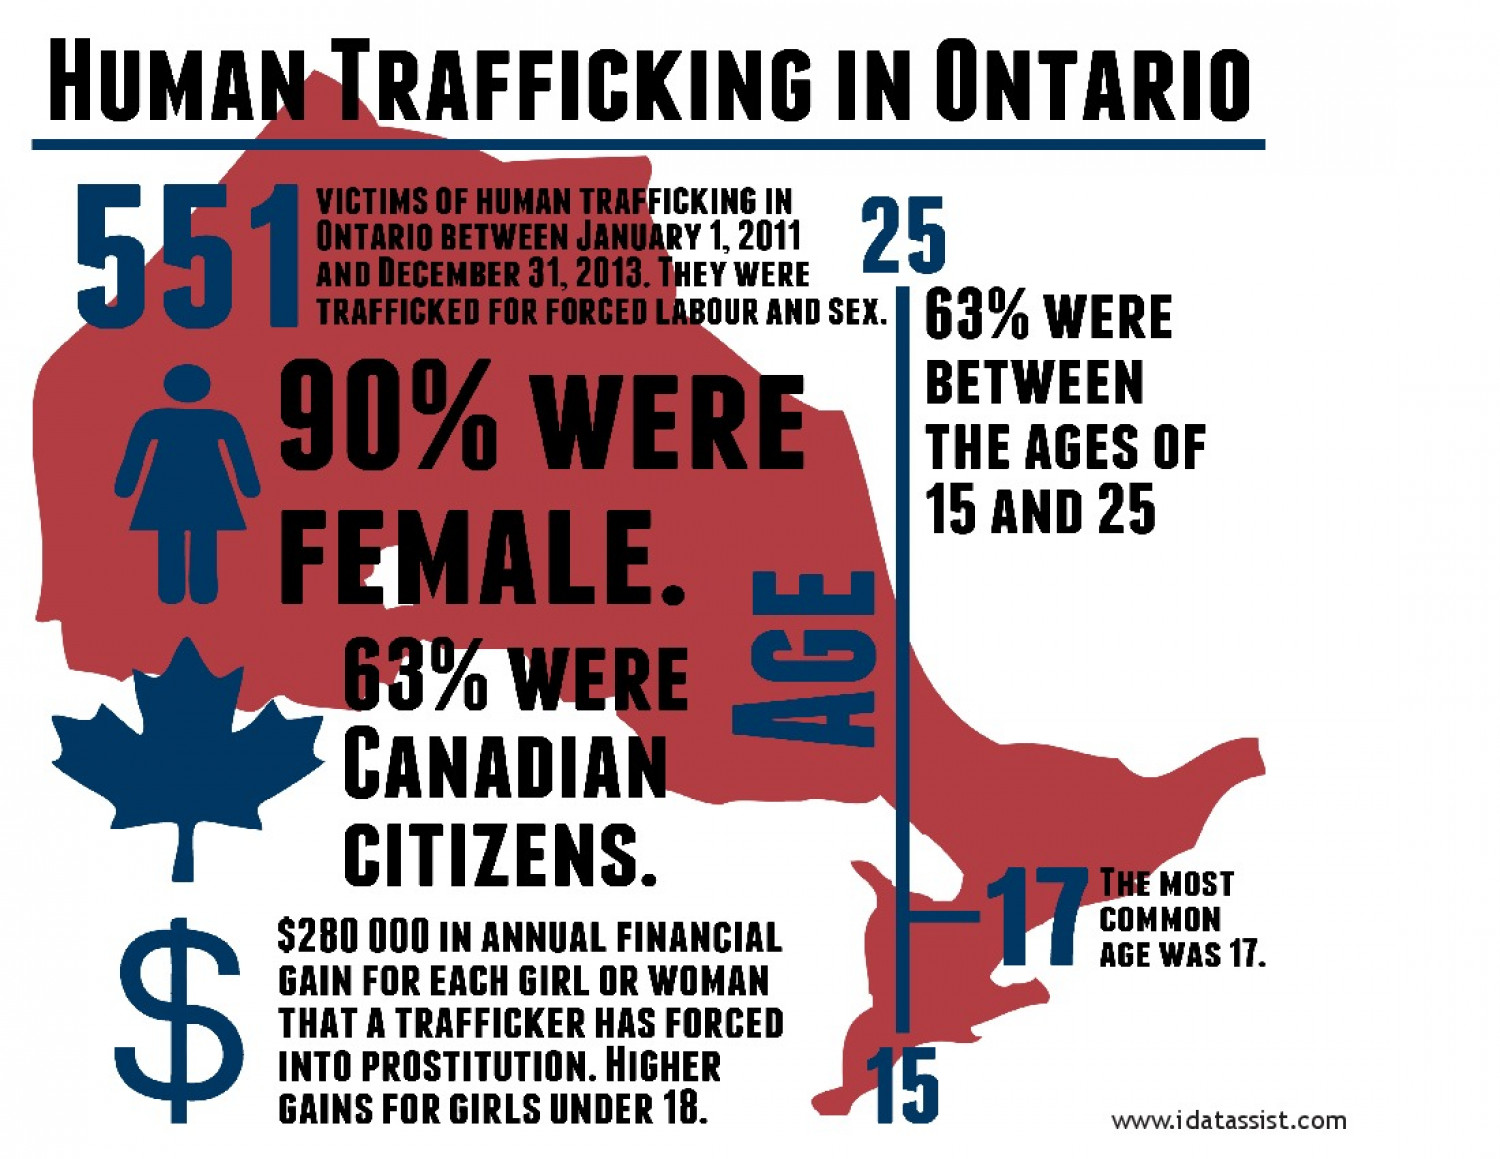 Human Trafficking in Ontario Infographic